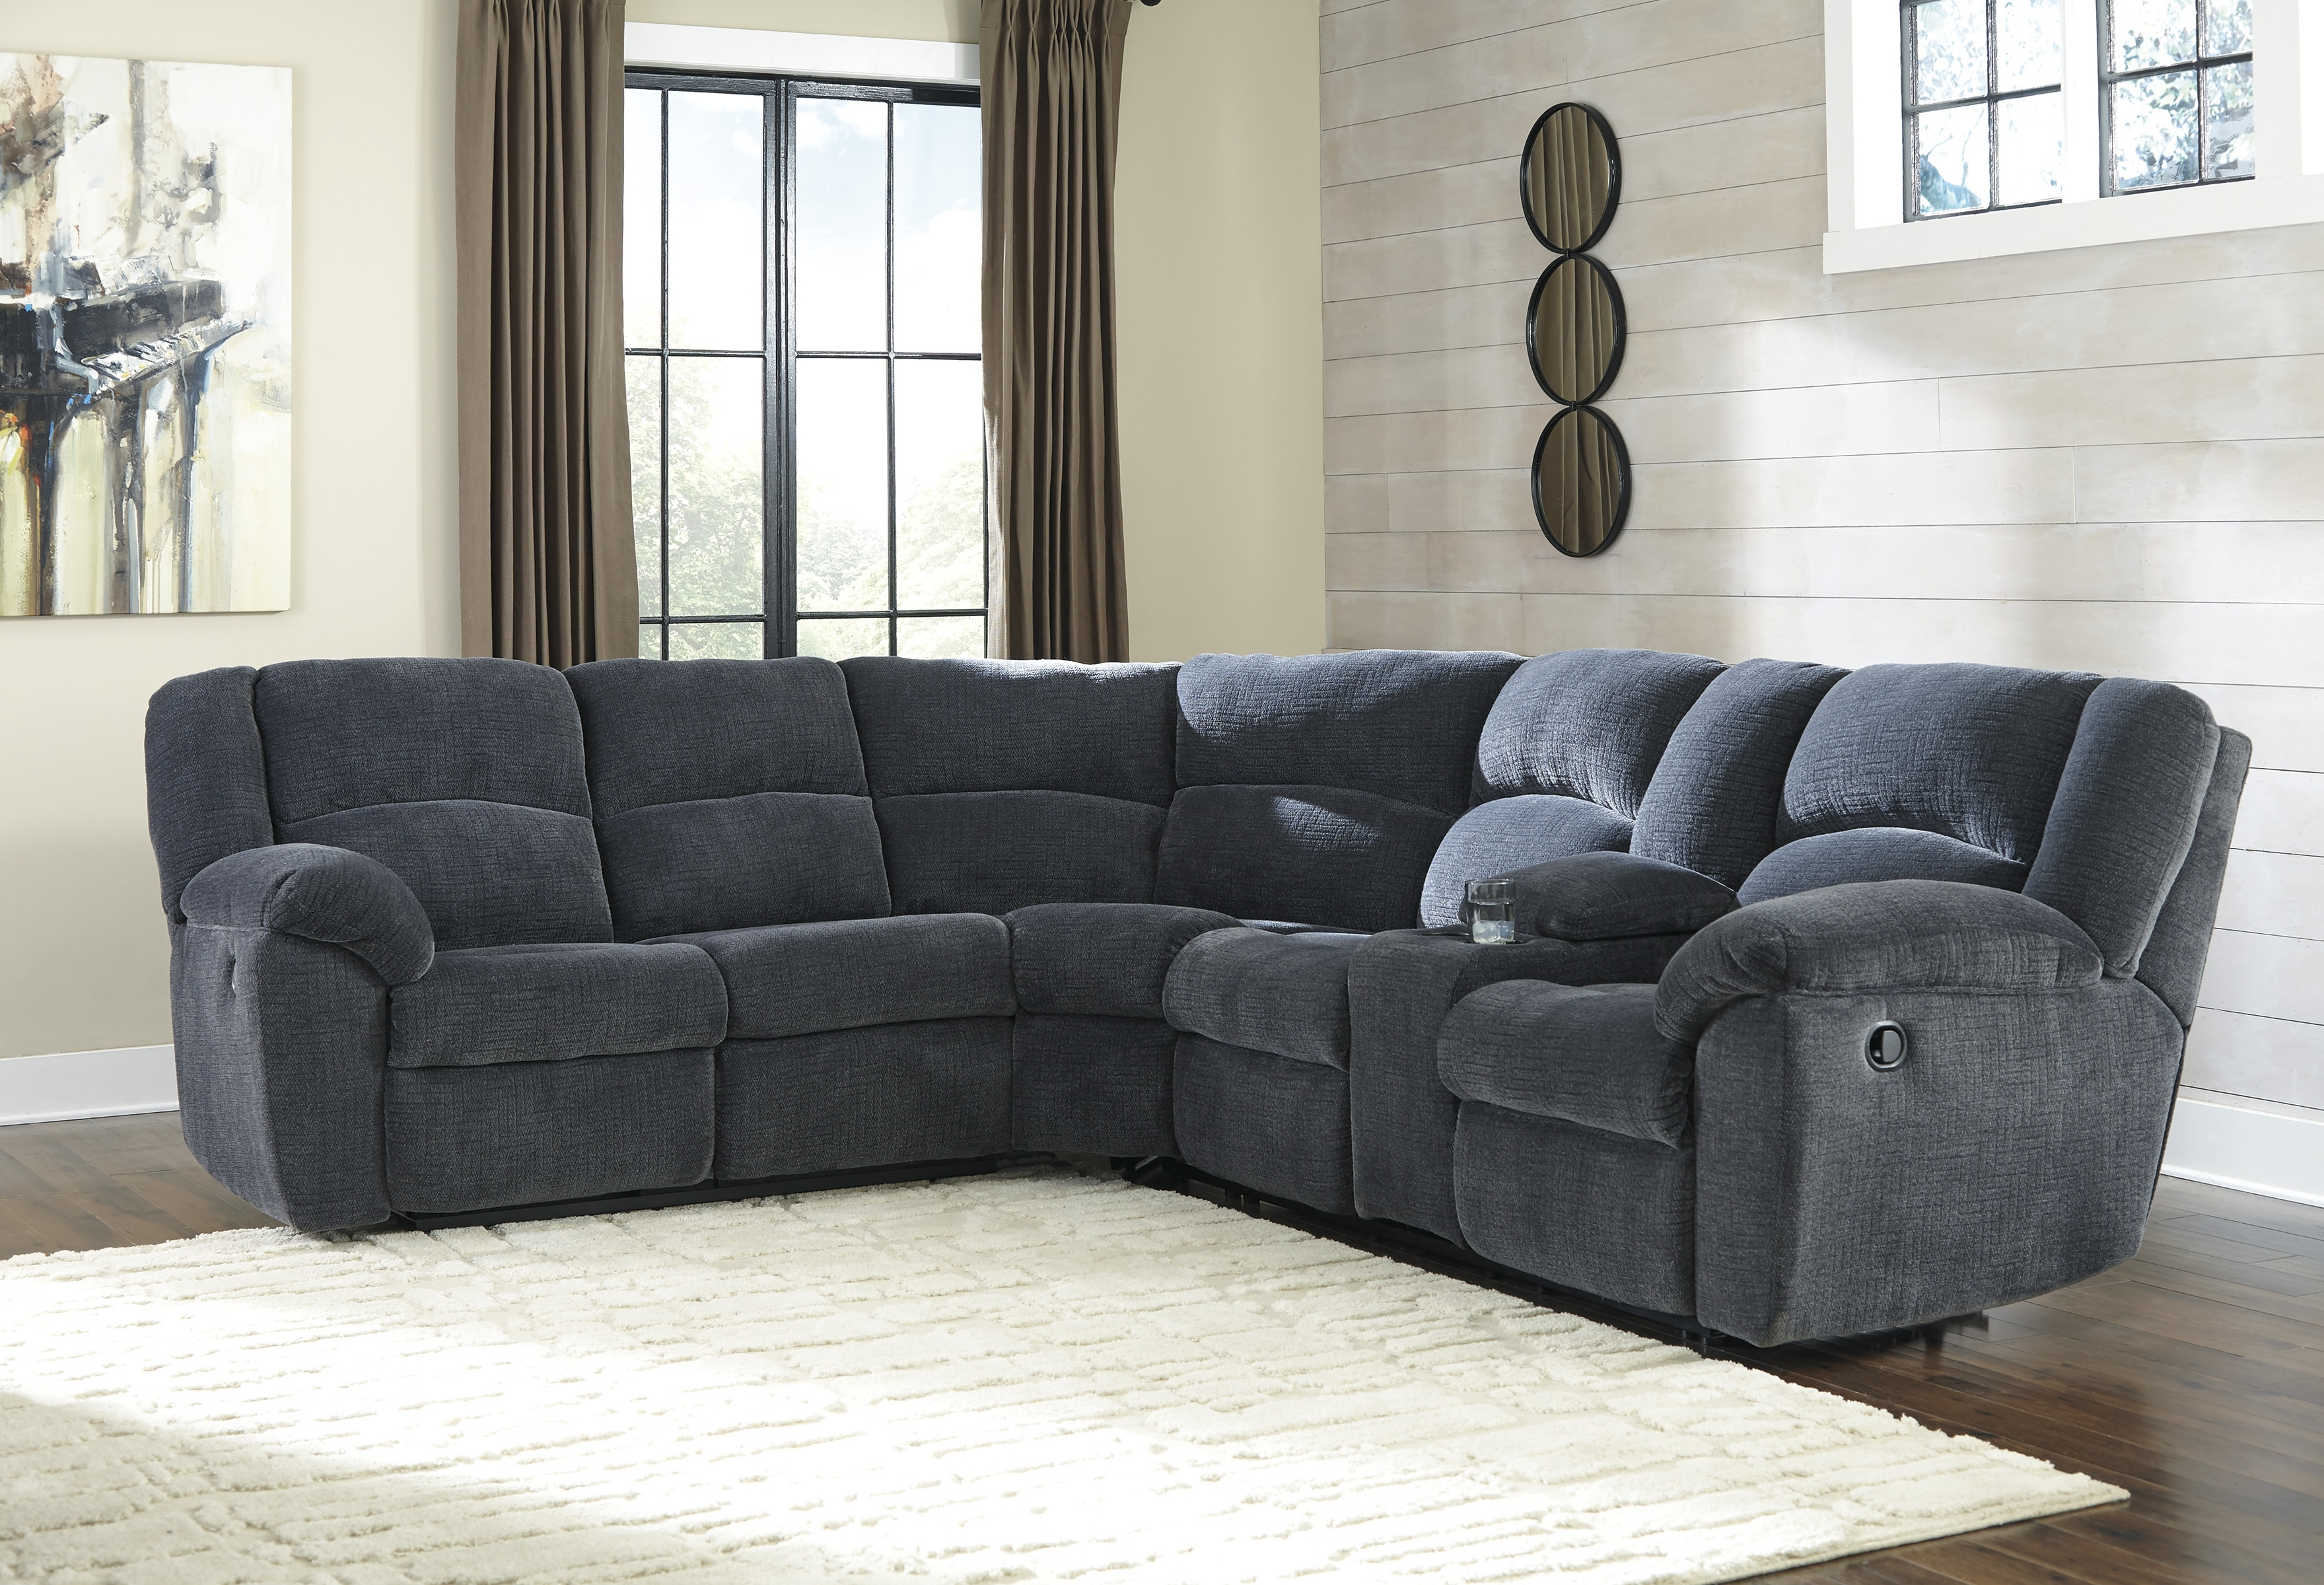 Sofa : Sectionals Sofas Cheap Sectional Sofas Under 400 Reclining With Fashionable Sectional Sofas Under  (View 17 of 20)